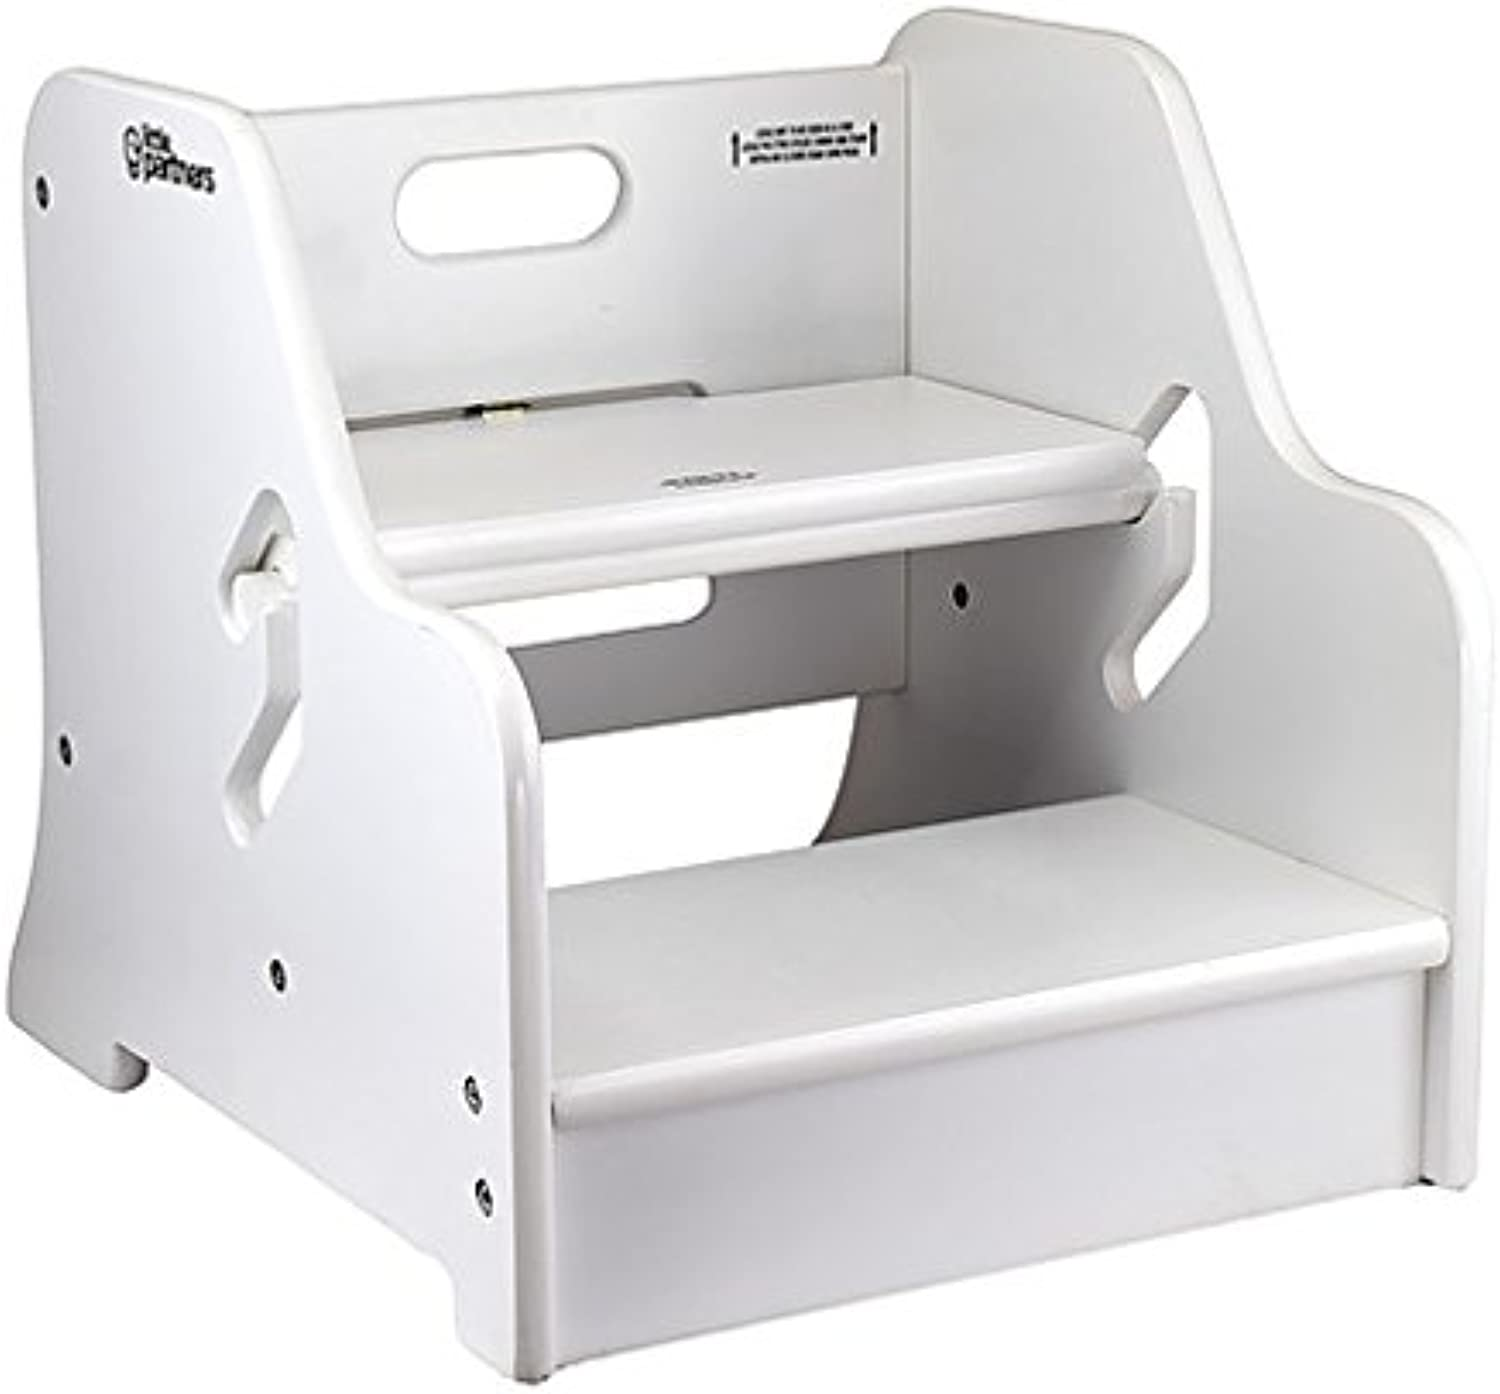 Little Partners Step Up Step Stool (Soft White)